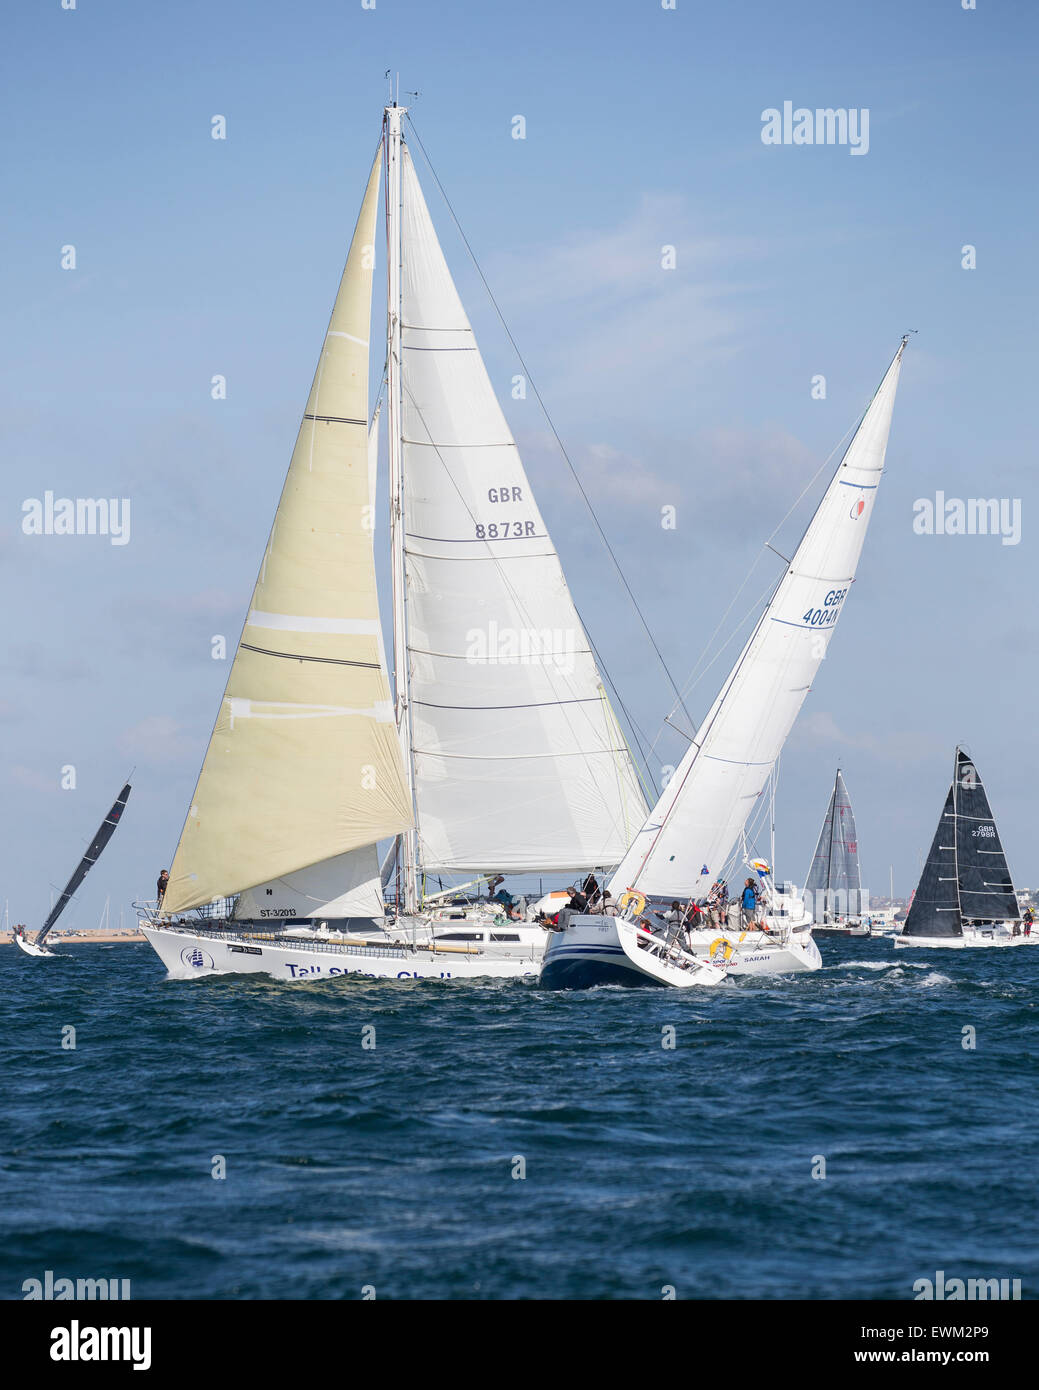 UK. 27th June, 2015. Bavaria 38 'Sarah'  in a close tacking contest during the 2015 Round the Island Race - Stock Image